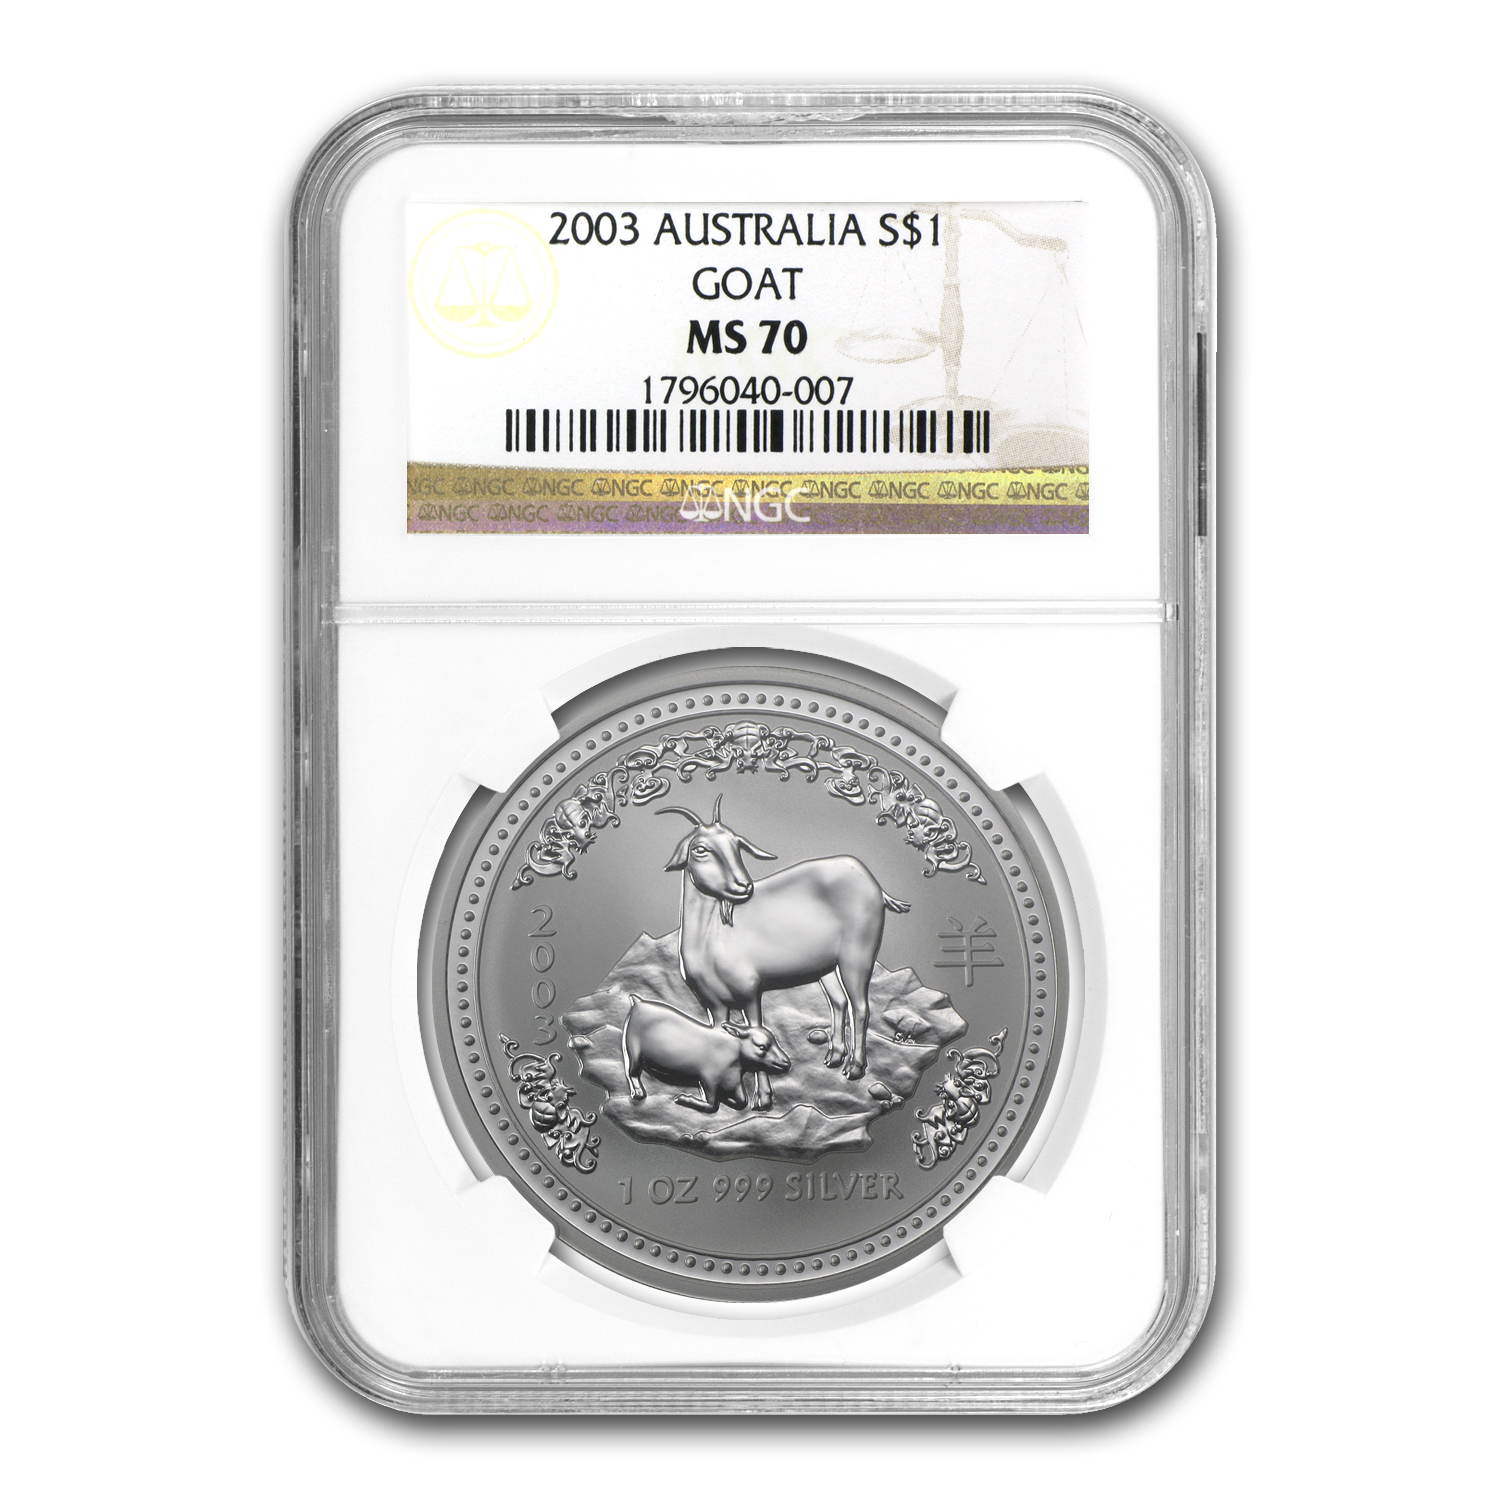 2003 Australia 1 oz Silver Year of the Goat MS-70 NGC